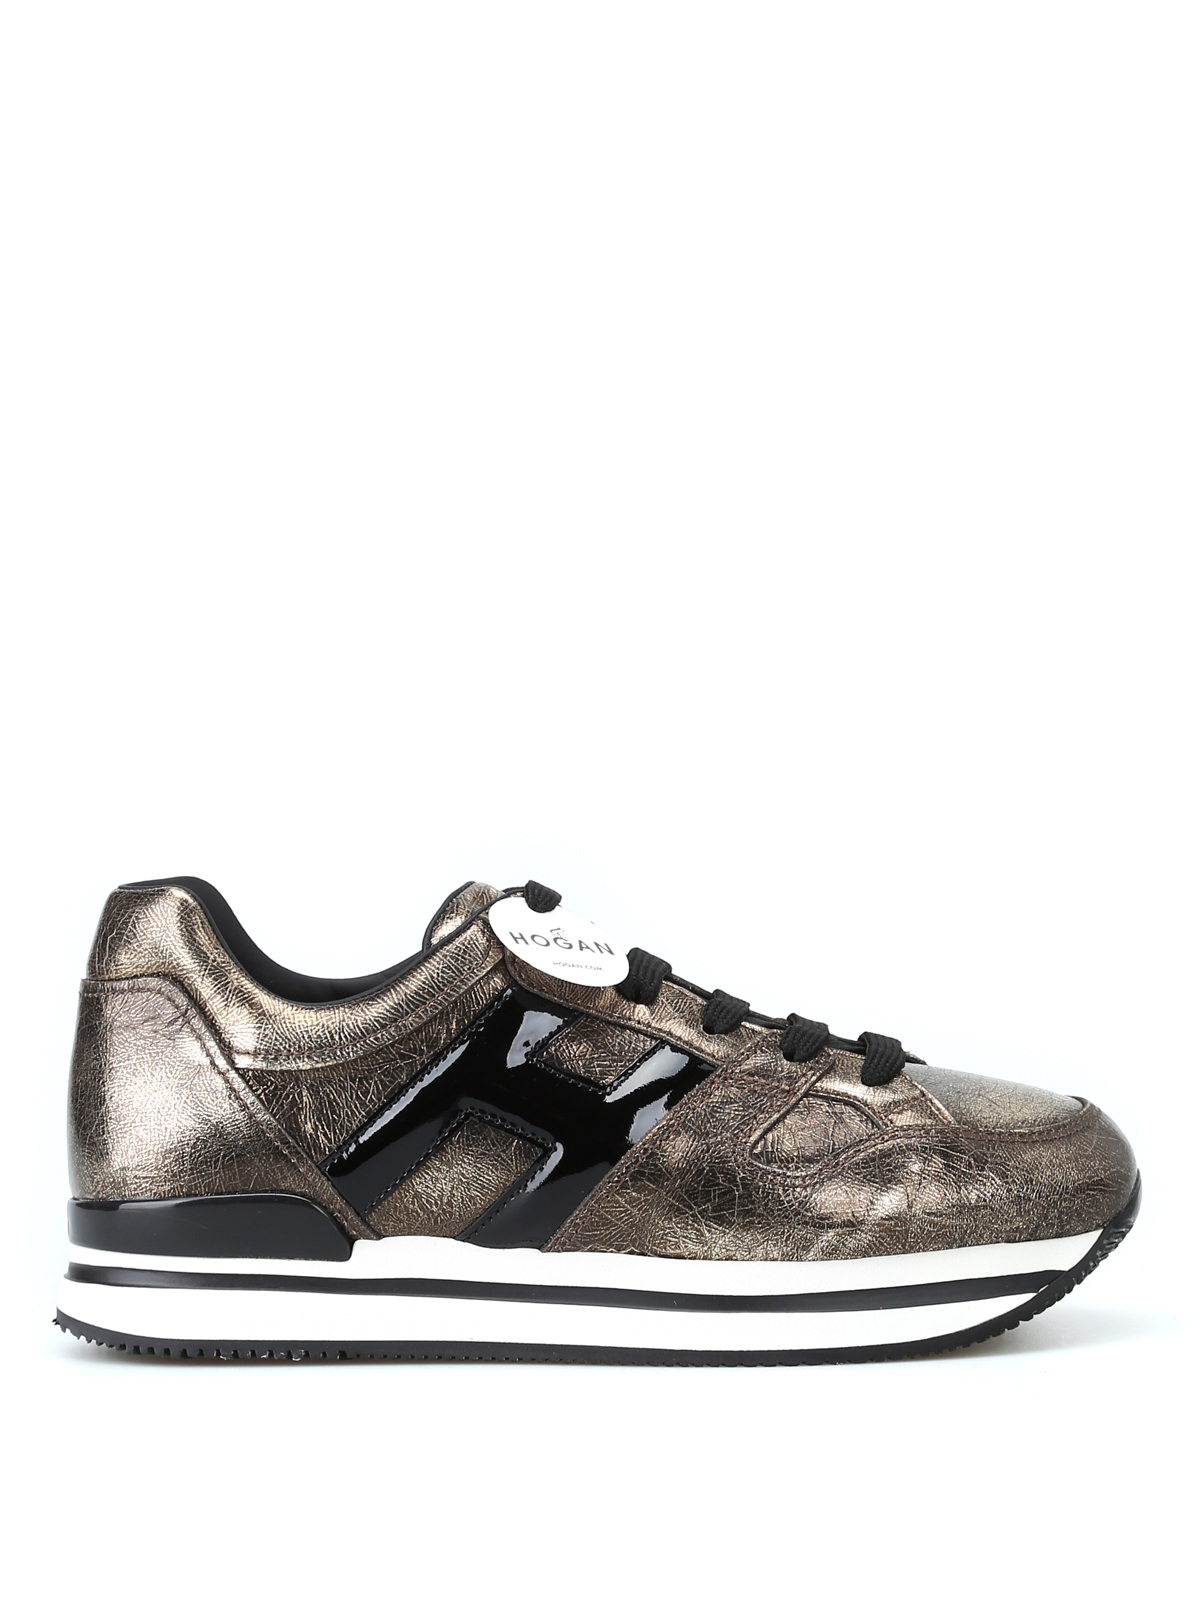 Trainers Hogan - Bronze metallic leather lace-up sneakers ...